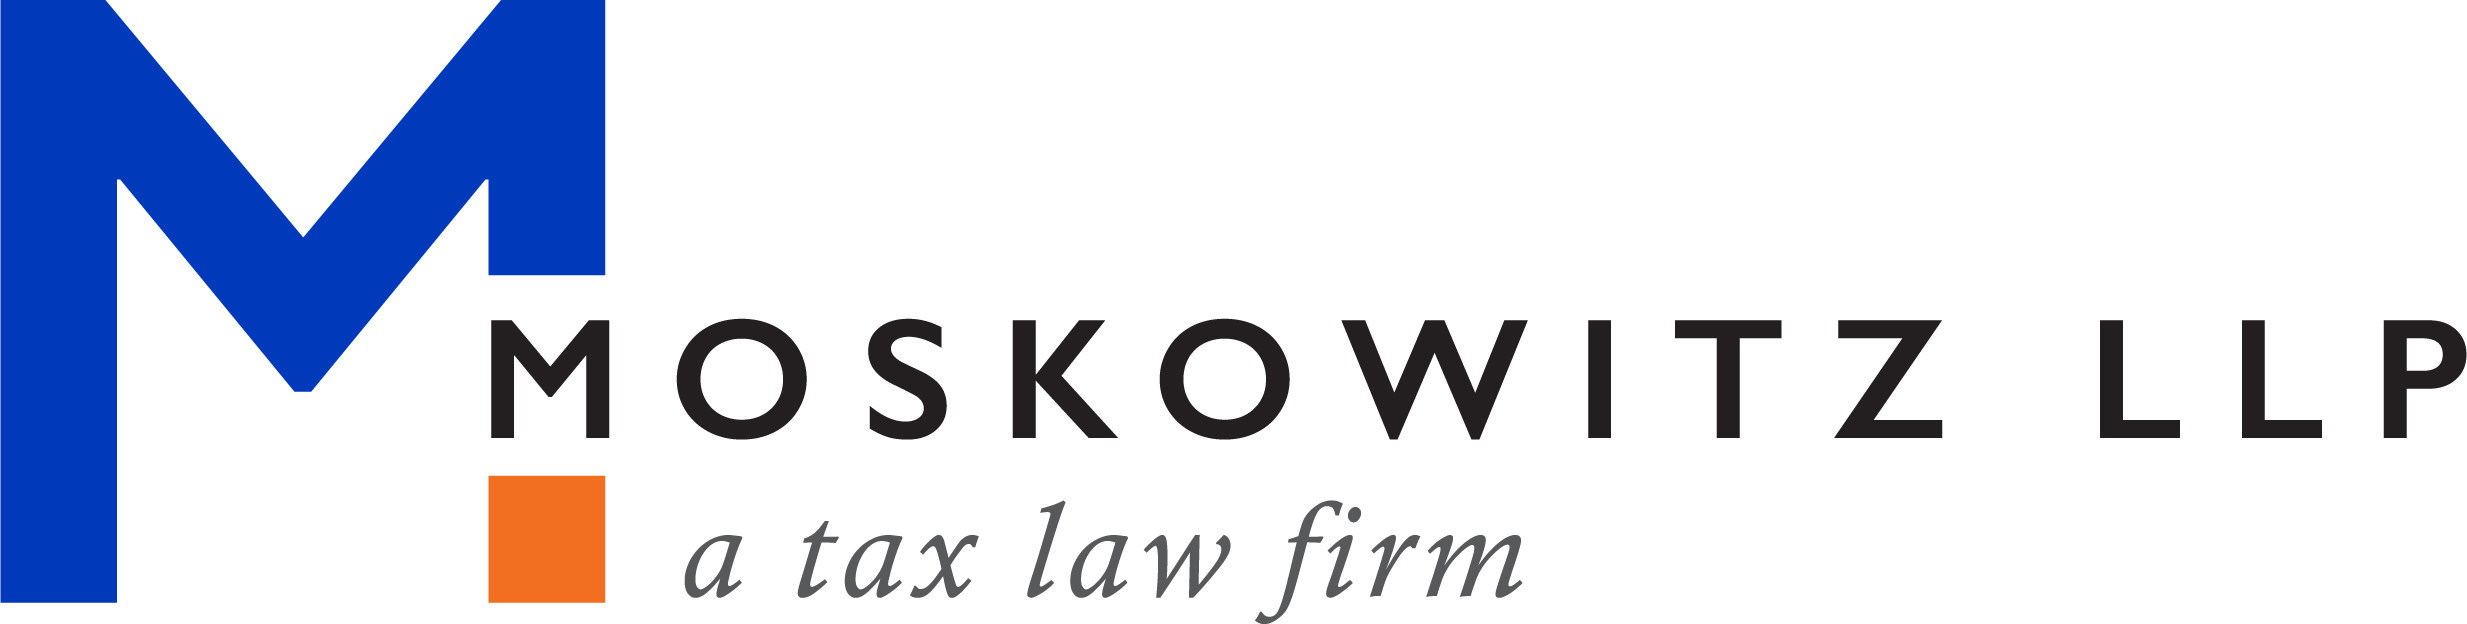 Visit www.MoskowitzLLP.com or call 415-394-7200 for more information about legal services, valuable tax resources, and to request a tax consultation.